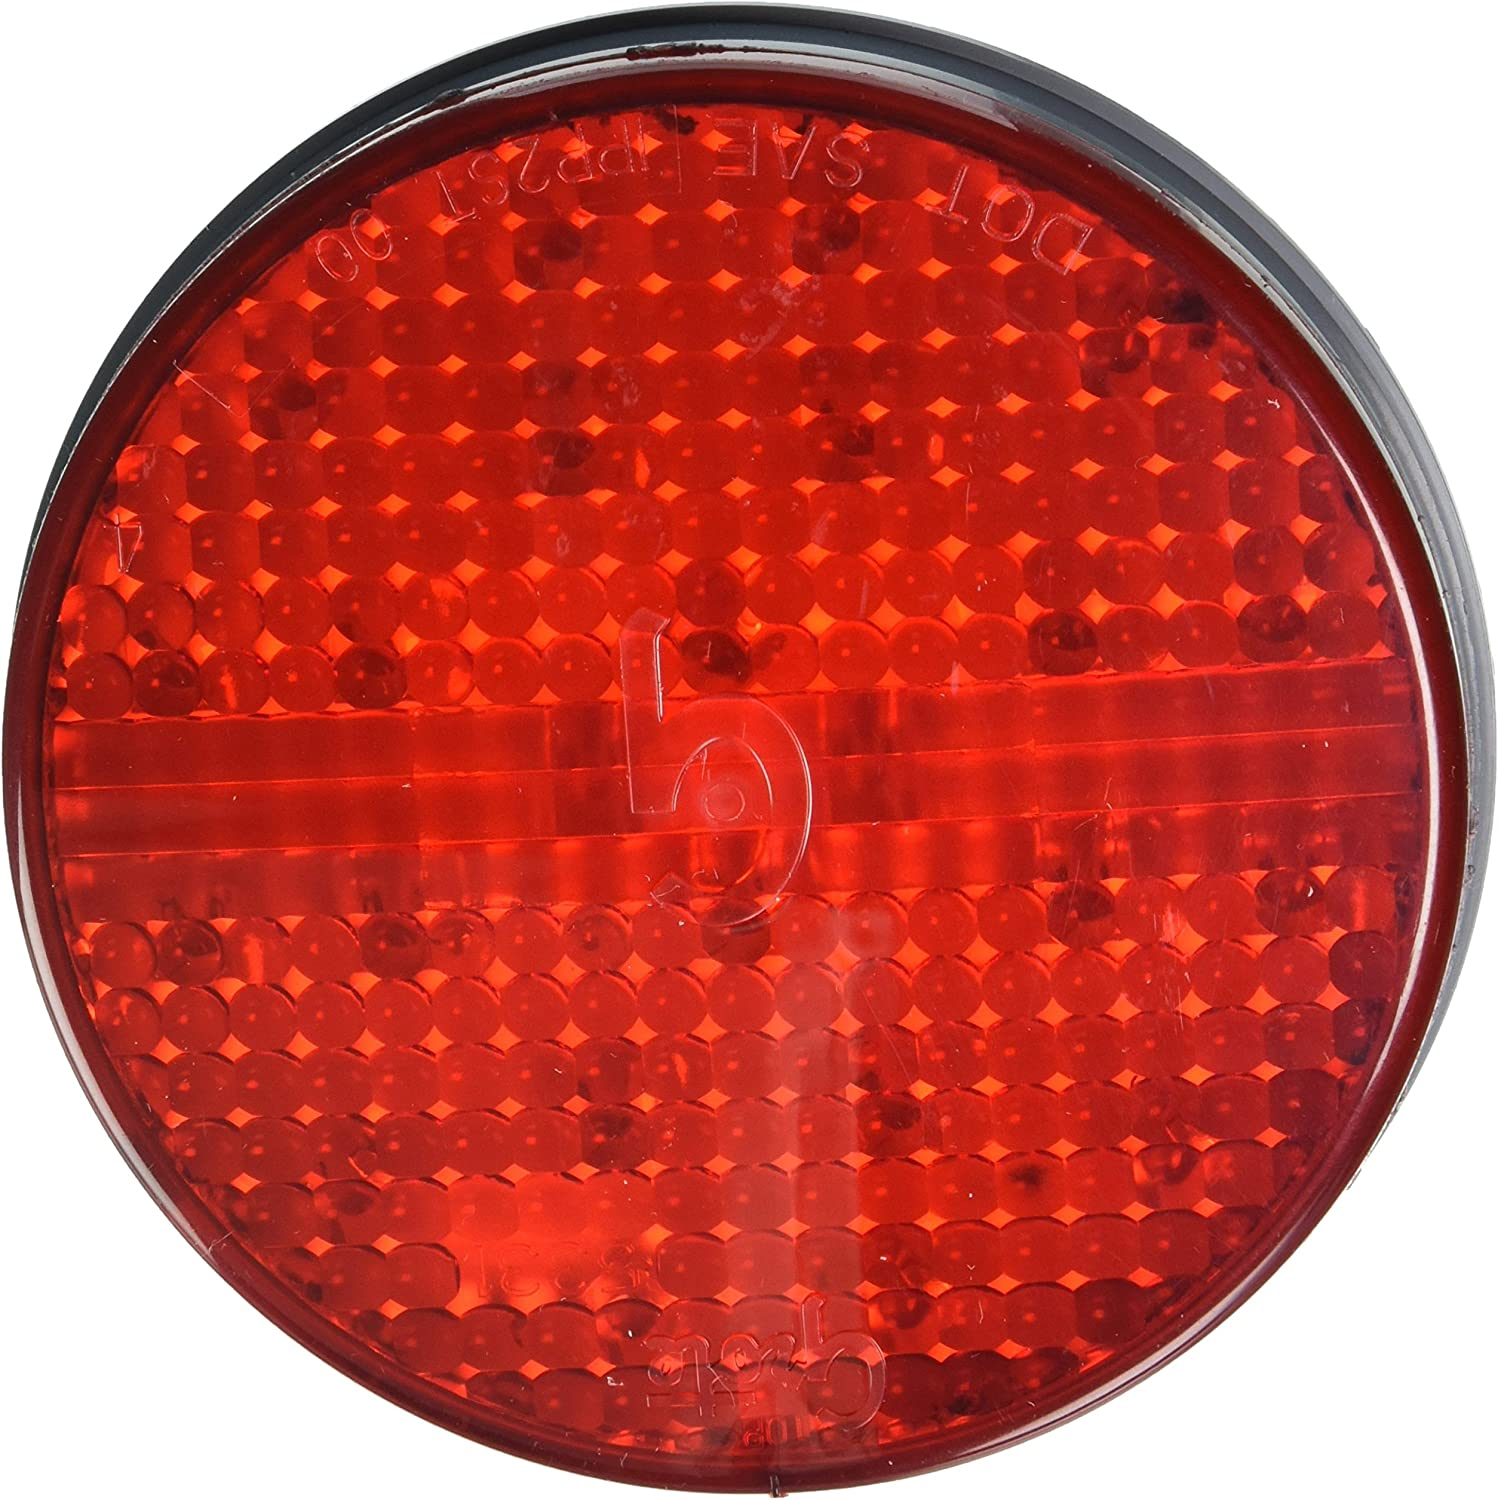 Grommet Mount, Male Pin Grote 53413 SuperNova 4 Full-Pattern LED Stop Tail Turn Light